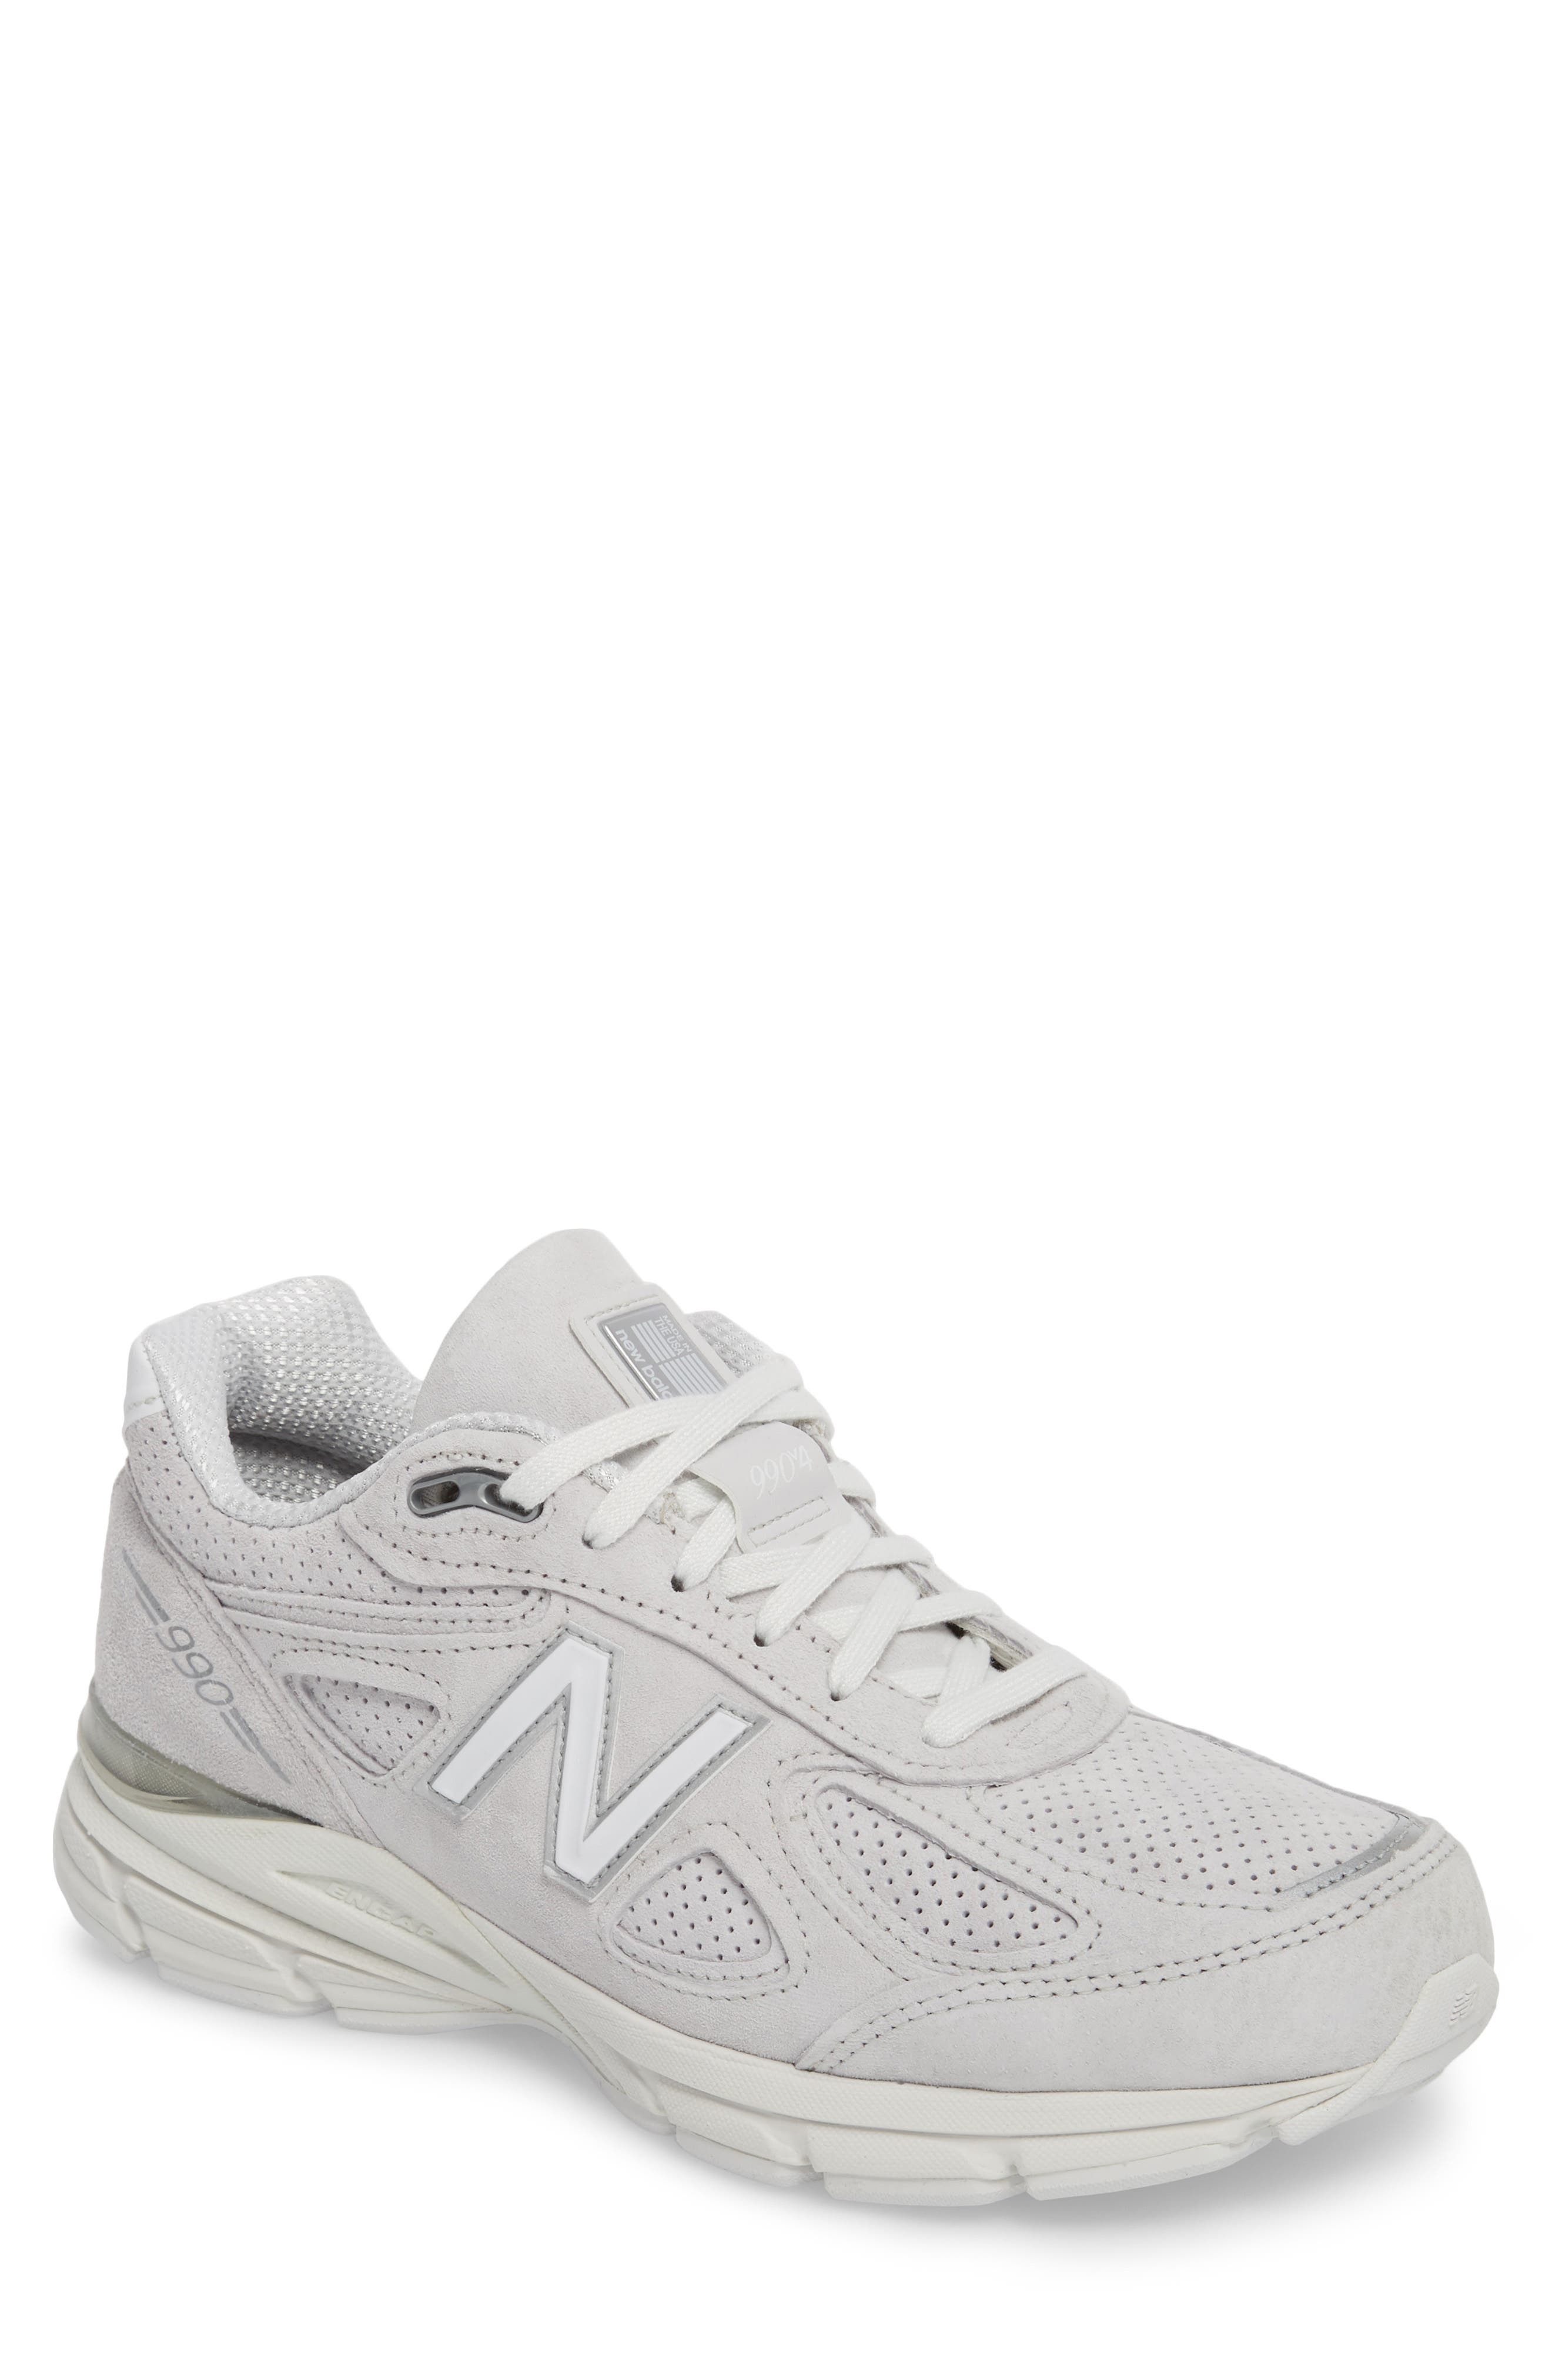 990v4 Perforated Sneaker,                         Main,                         color, Arctic Fox